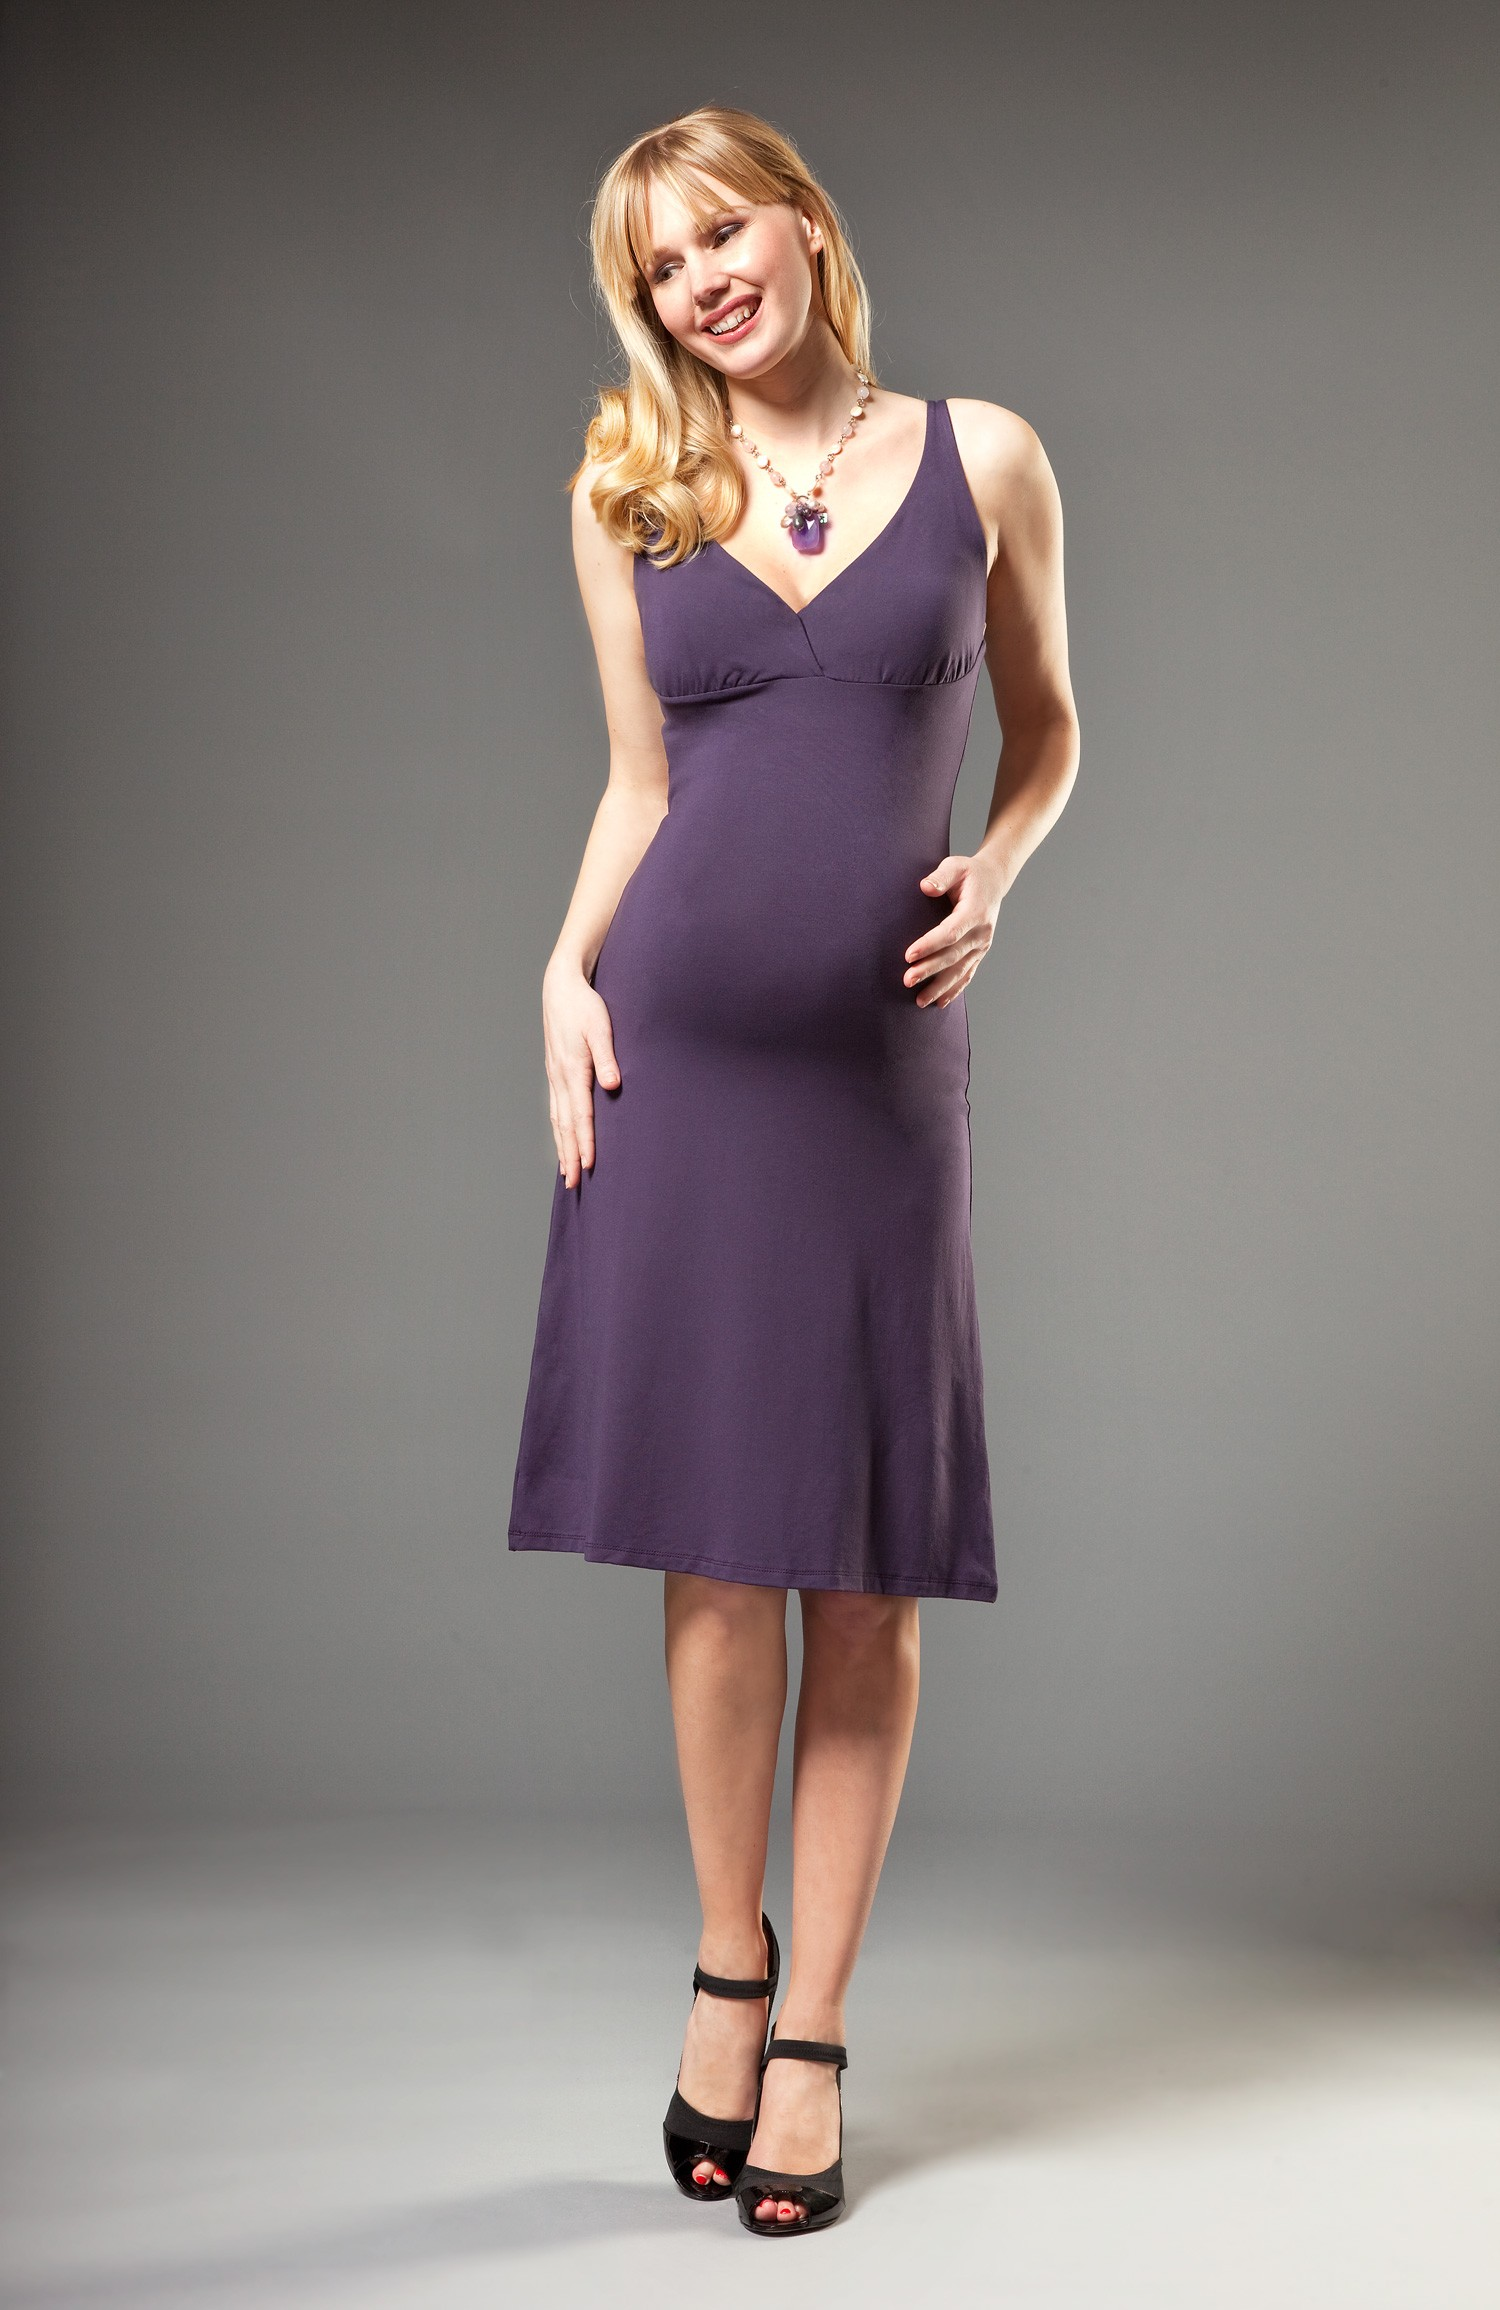 Maternity Cocktail Dresses Picture Collection